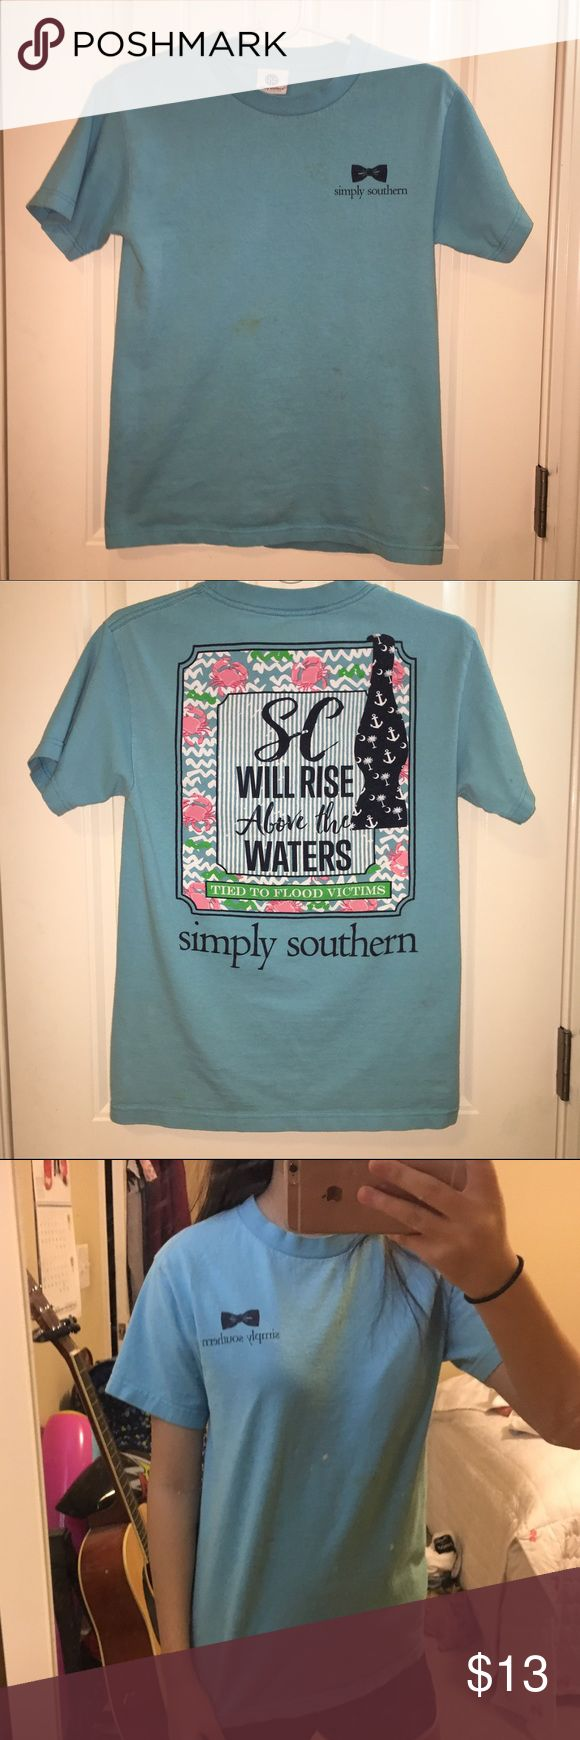 Simply Southern Sea Blue Short Sleeve T-Shirt This is a t-shirt from Simply Southern, its in overall good condition but it has a few stains on the front (picture #1&4), but can you can see from the mirror picture its not very noticeable unless you look for it! *If you have any questions please do not hesitate to ask!* I am willing to take offers, but please try to be reasonable!  (I ship really fast!!! (2-3 days) ✈️🇺🇸) *Not vineyard vines! Simple southern wasnt on here so i just put it as…